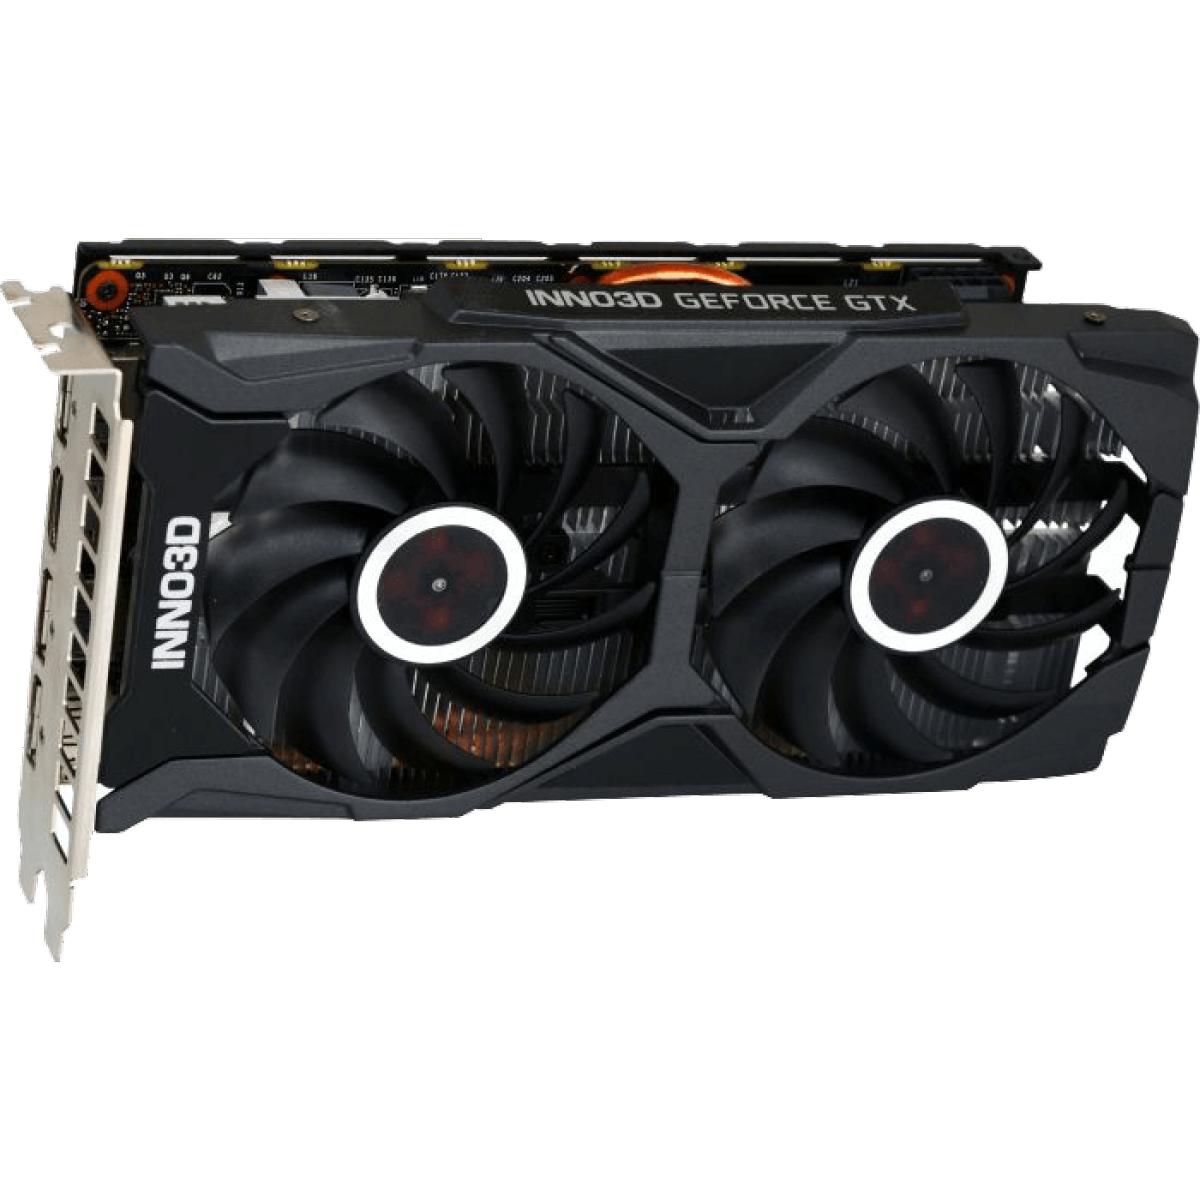 Placa de Vídeo Inno3D GeForce RTX 2060 Super Twin X2 OC, 8GB GDDR6, 256Bit, N206S2-08D6X-1710VA15L